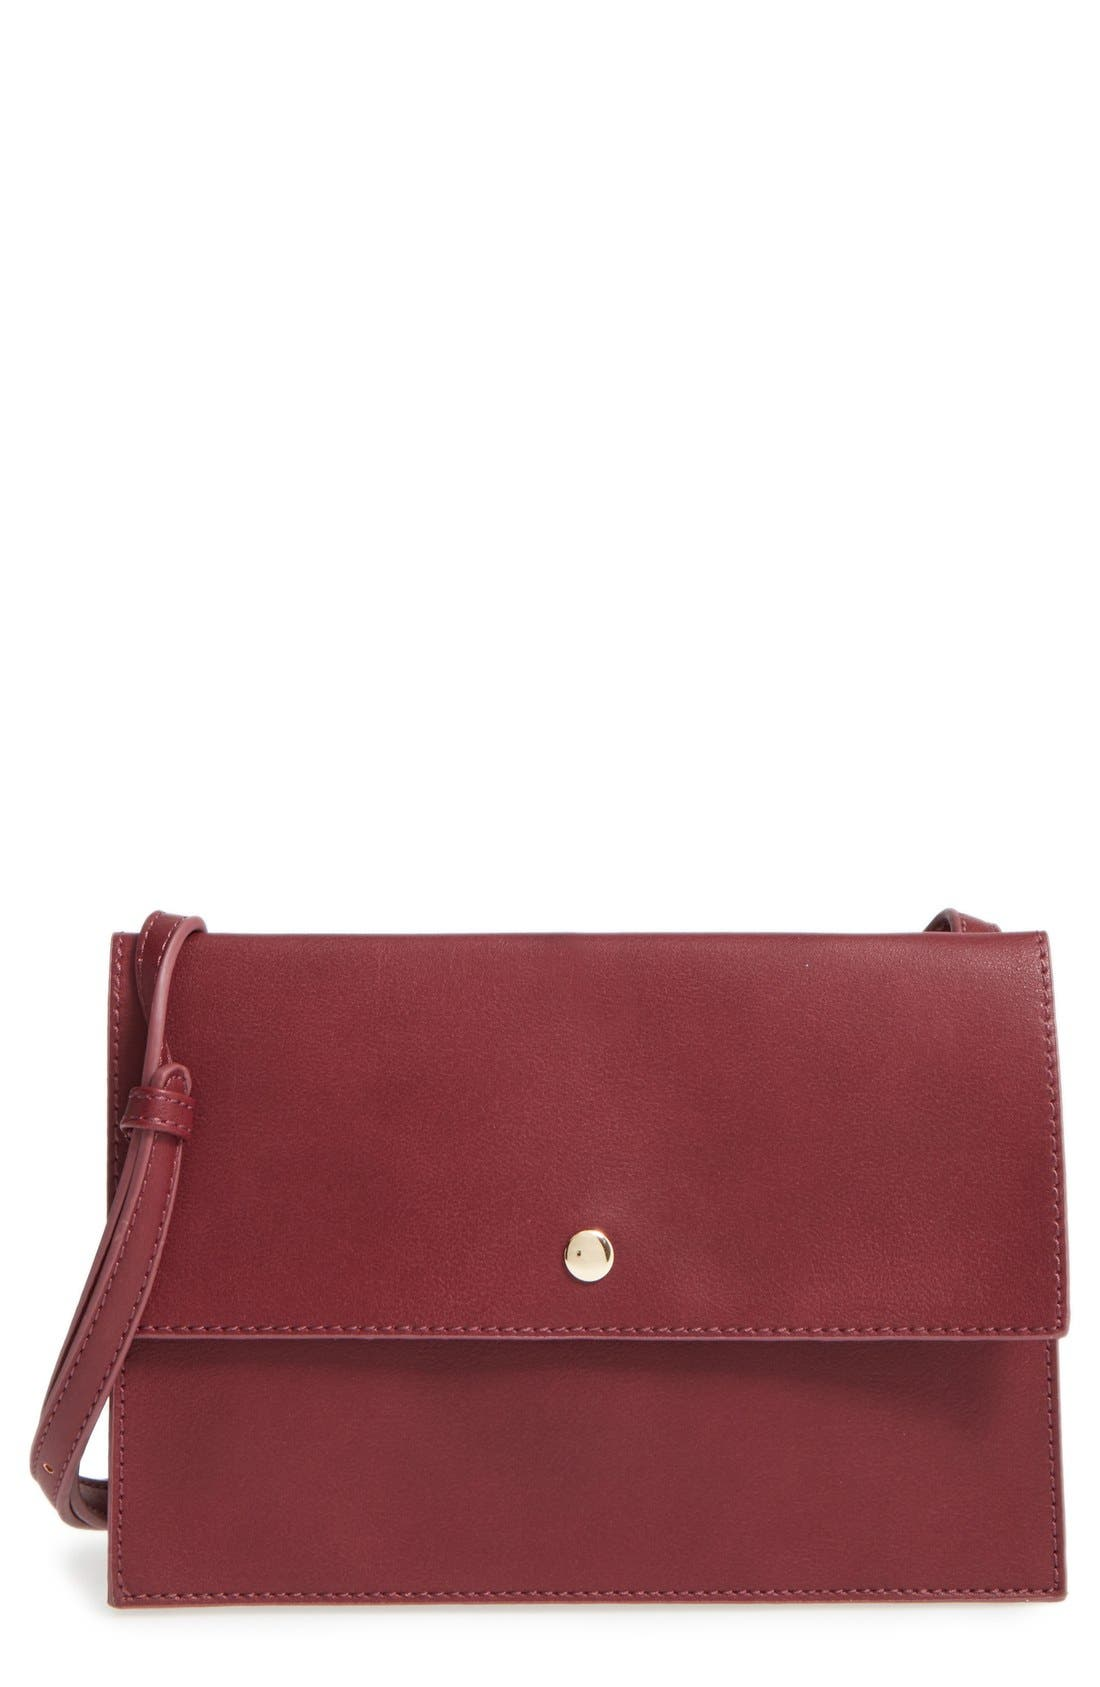 Main Image - Sole Society 'Vanessa' Faux Leather Crossbody Bag